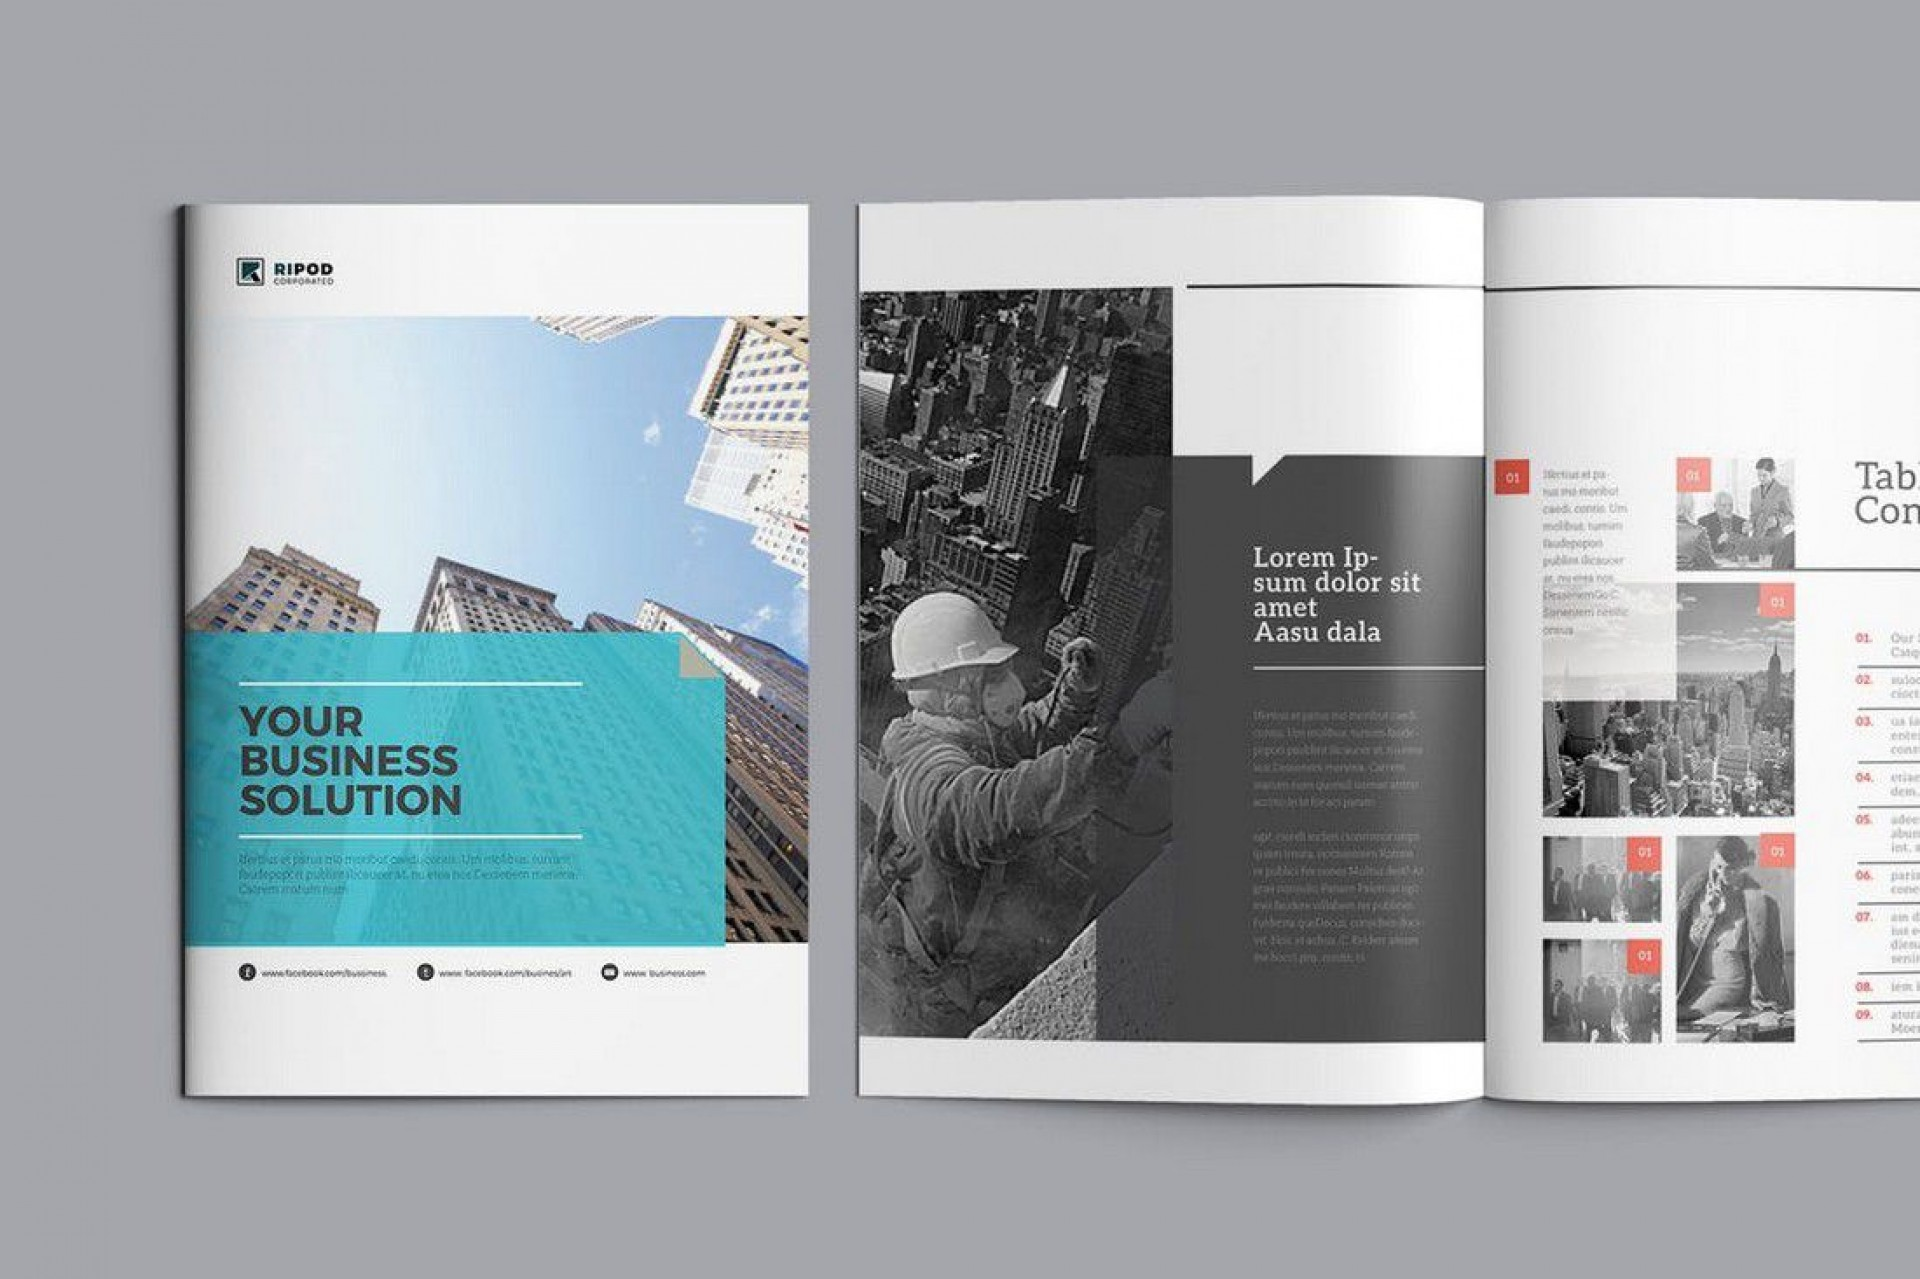 007 Remarkable Indesign A4 Brochure Template Free Download Highest Quality 1920